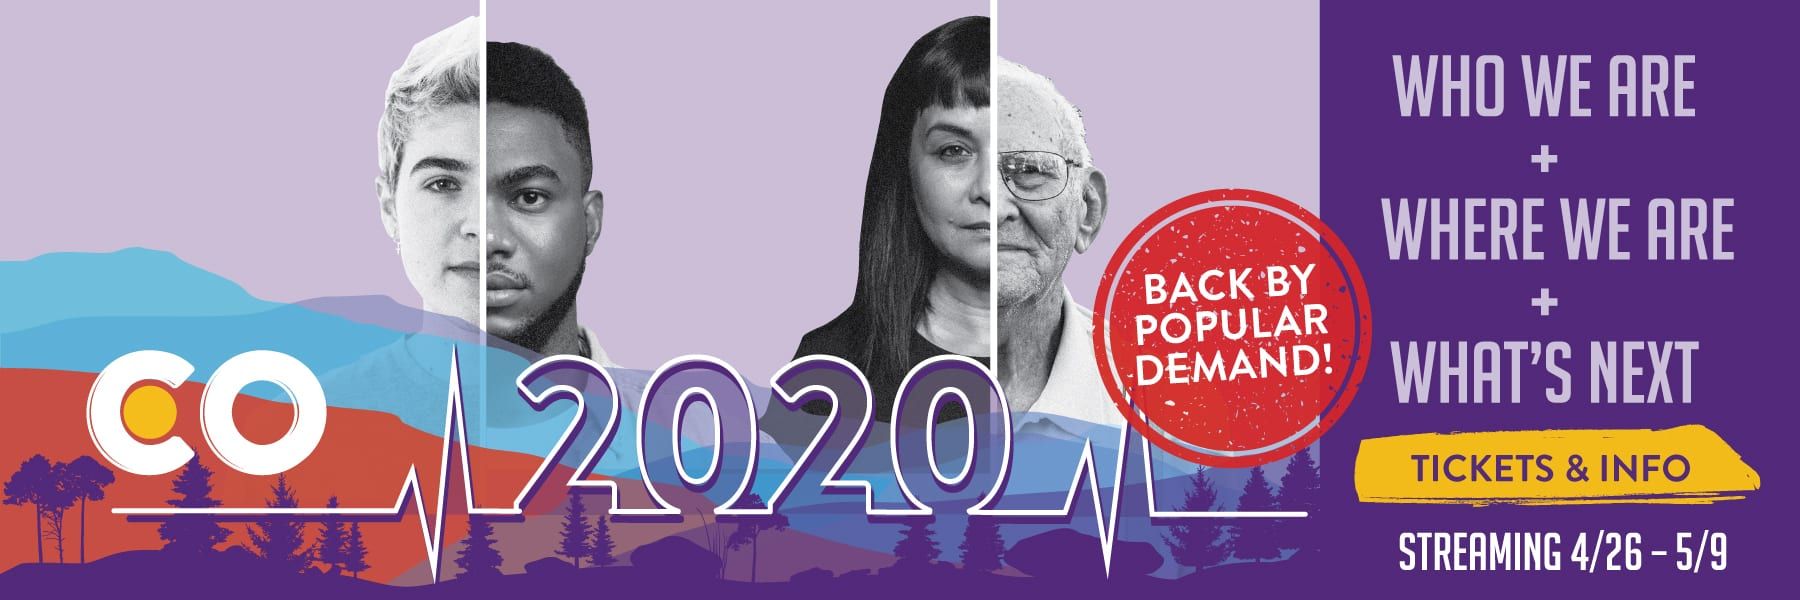 CO2020 Back by popular demand